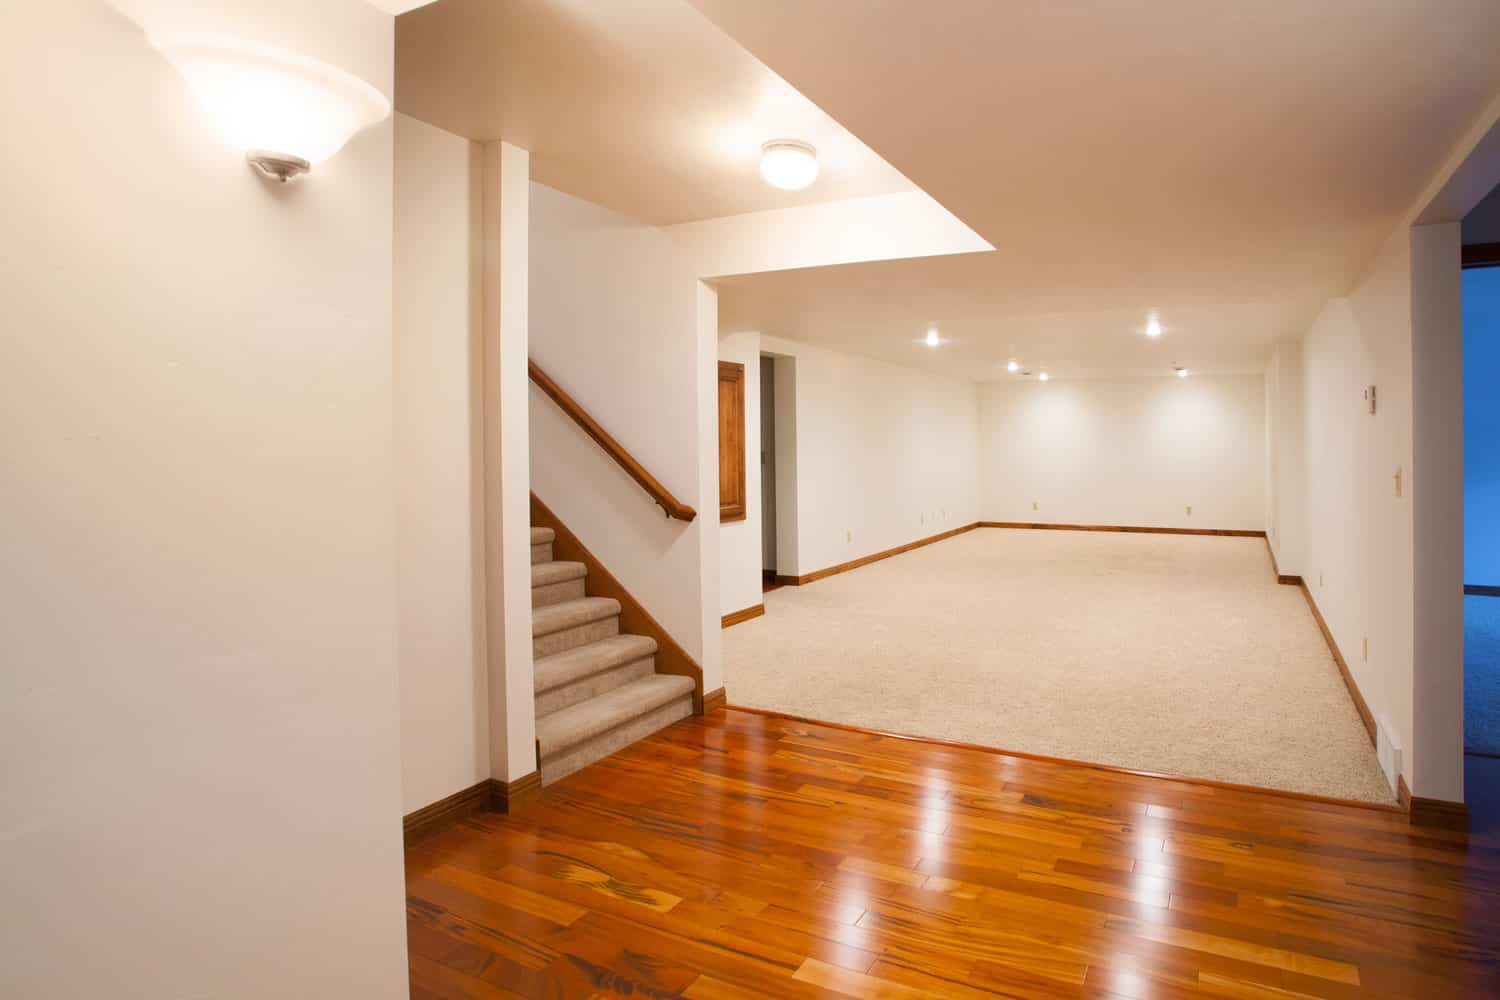 Interior of a modern basement with wooden laminated flooring and a section with carpeted flooring